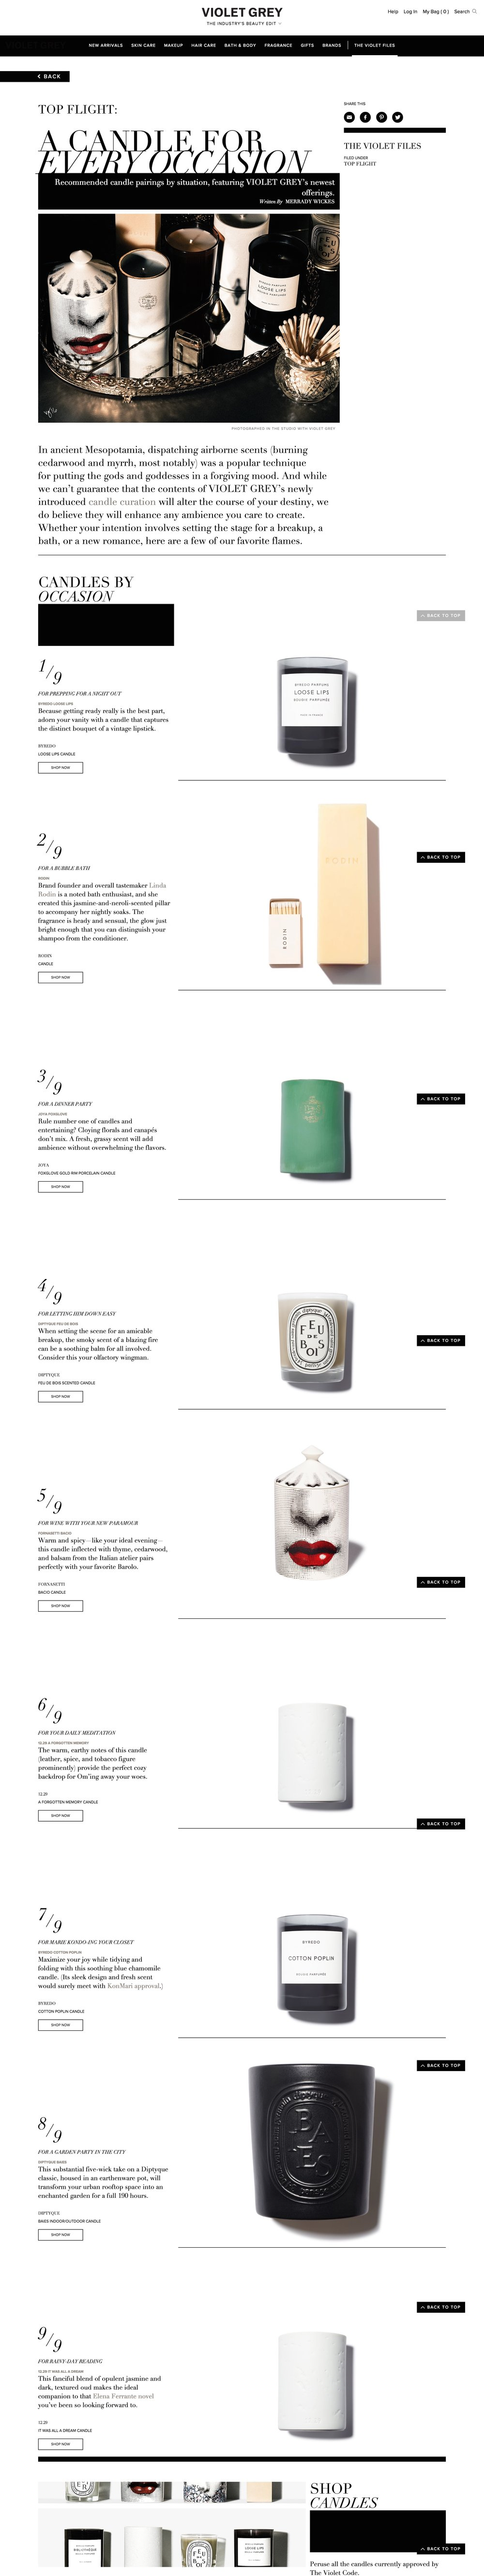 screencapture-violetgrey-violet-files-top-flight-a-candle-for-every-occasion-1487190986030.jpg